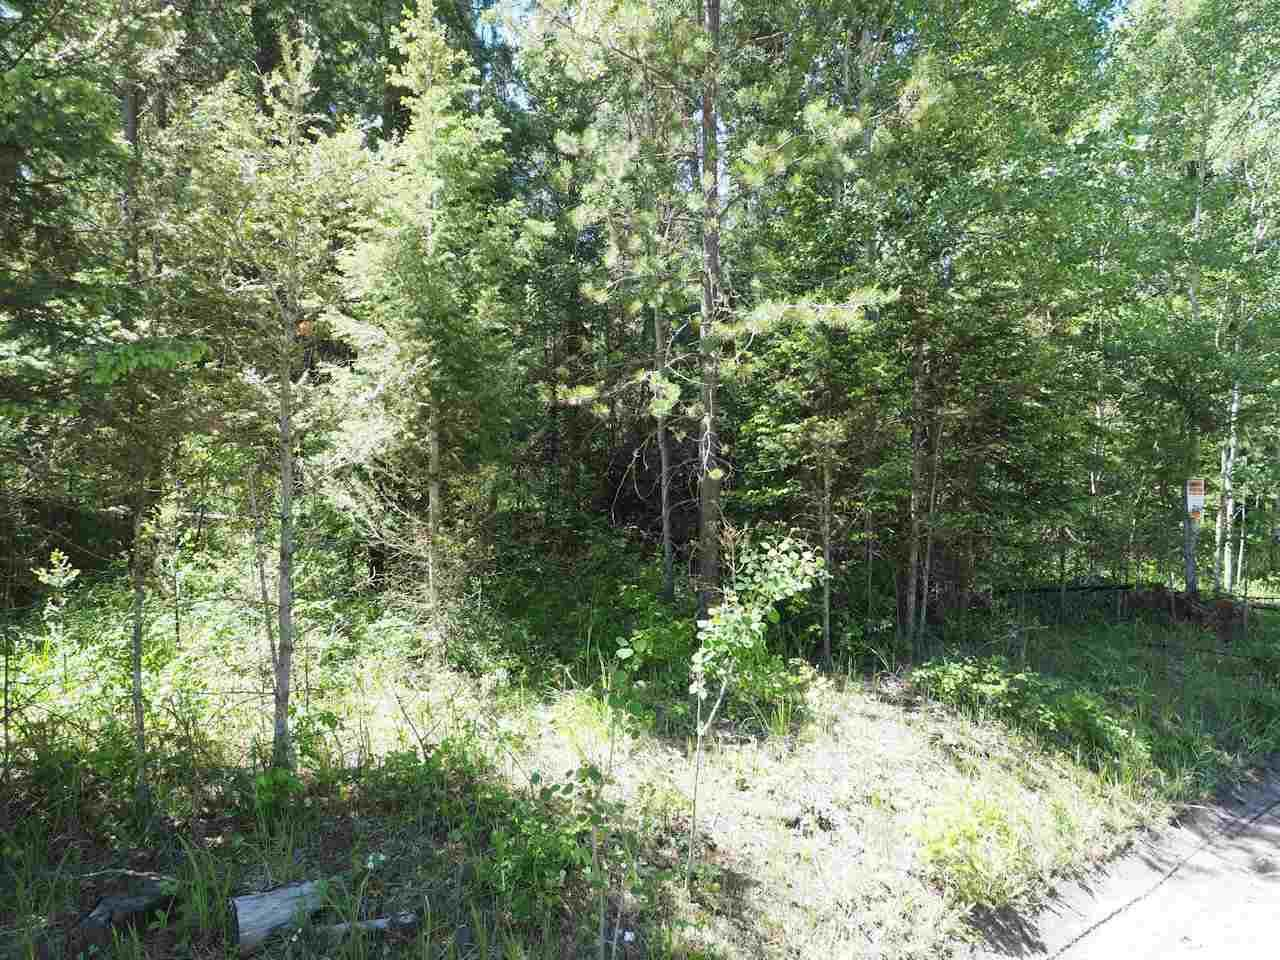 Photo 7: Photos: LOT 9 EASZEE Drive in 108 Mile Ranch: 108 Ranch Land for sale (100 Mile House (Zone 10))  : MLS®# R2467252